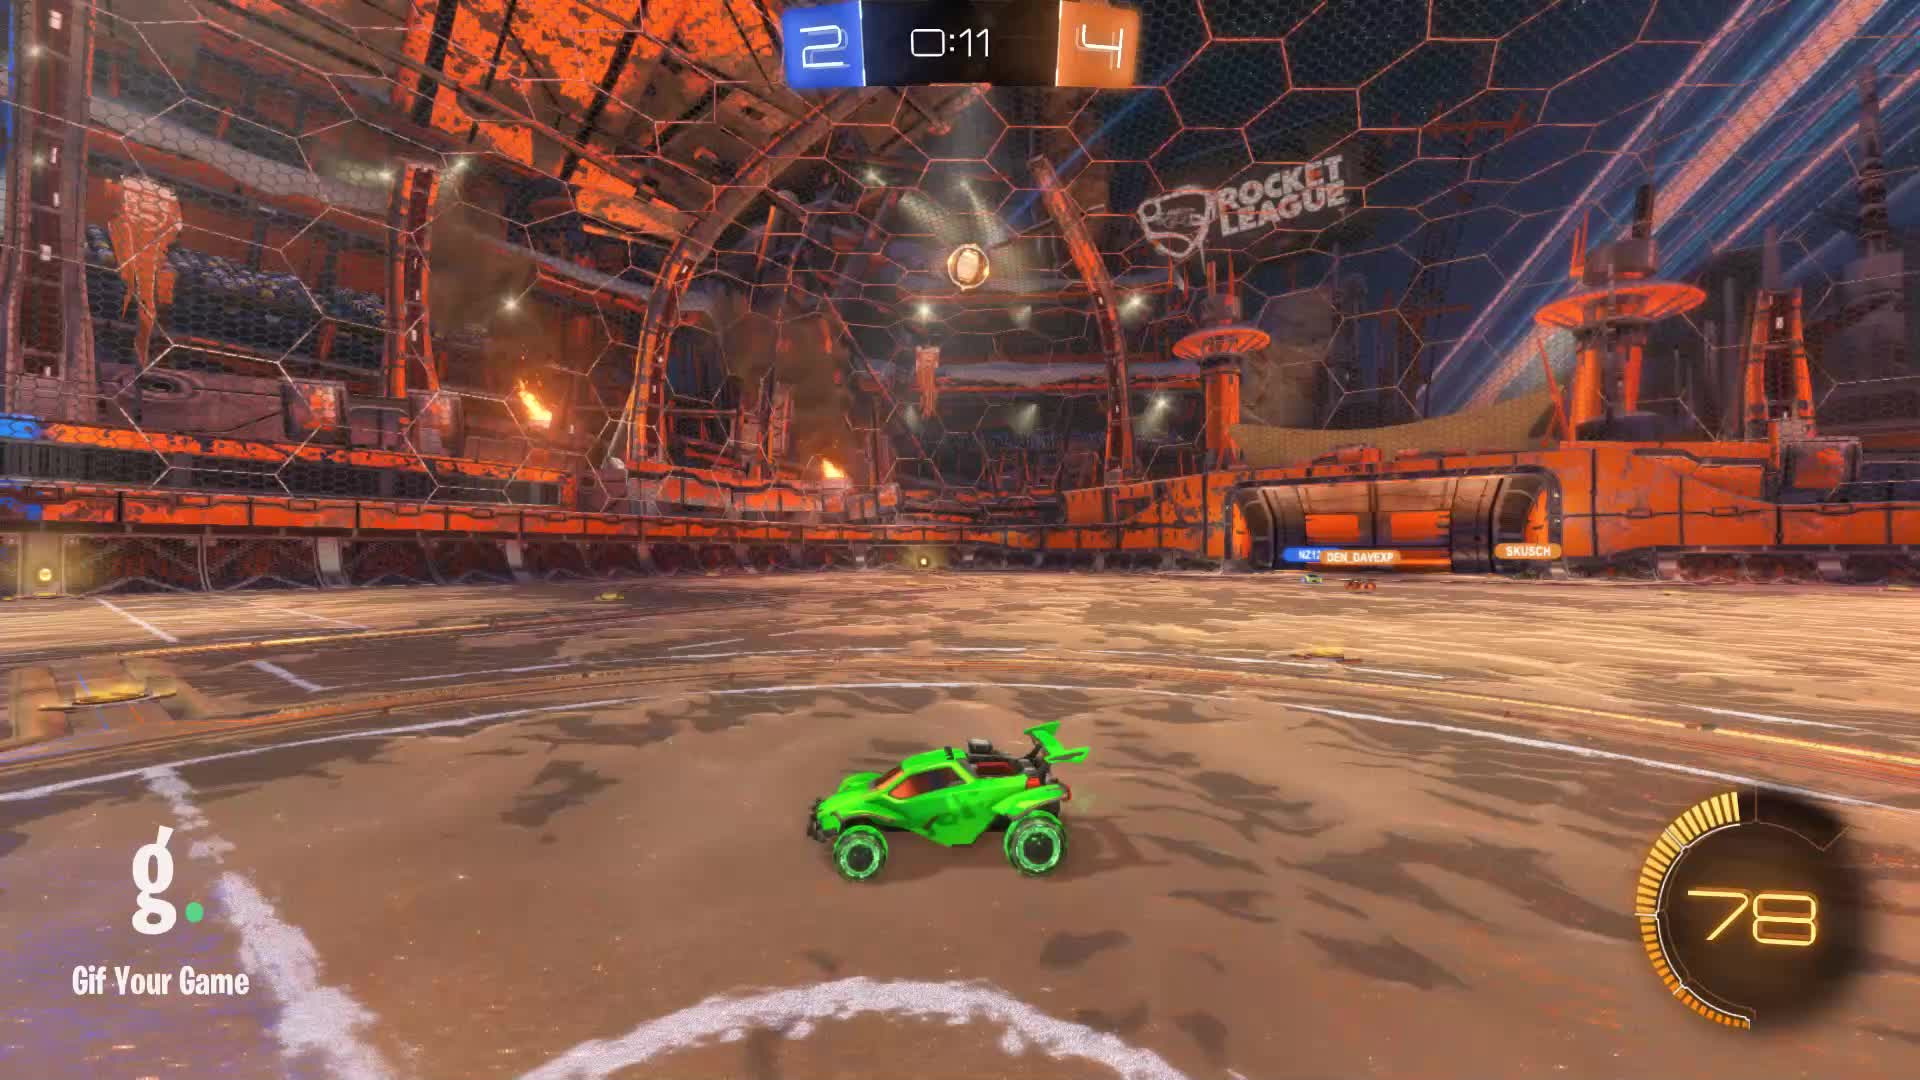 Assist, Gif Your Game, GifYourGame, Rocket League, RocketLeague, Timper [NL], Assist 2: Timper [NL] GIFs